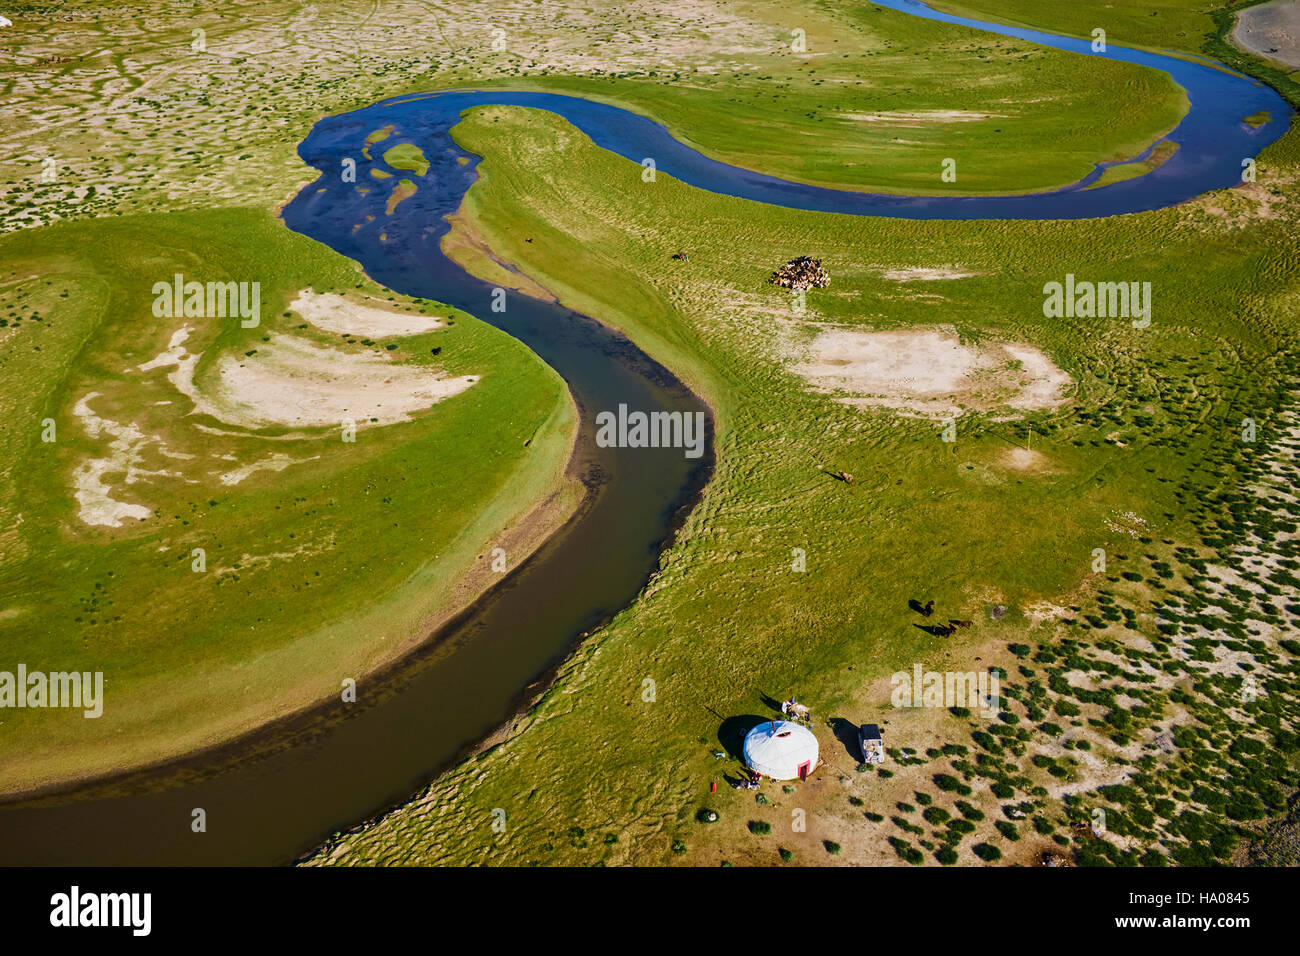 Mongolia, Bayan-Ulgii province, western Mongolia, nomad camp of Kazakh people in the steppe Stock Photo